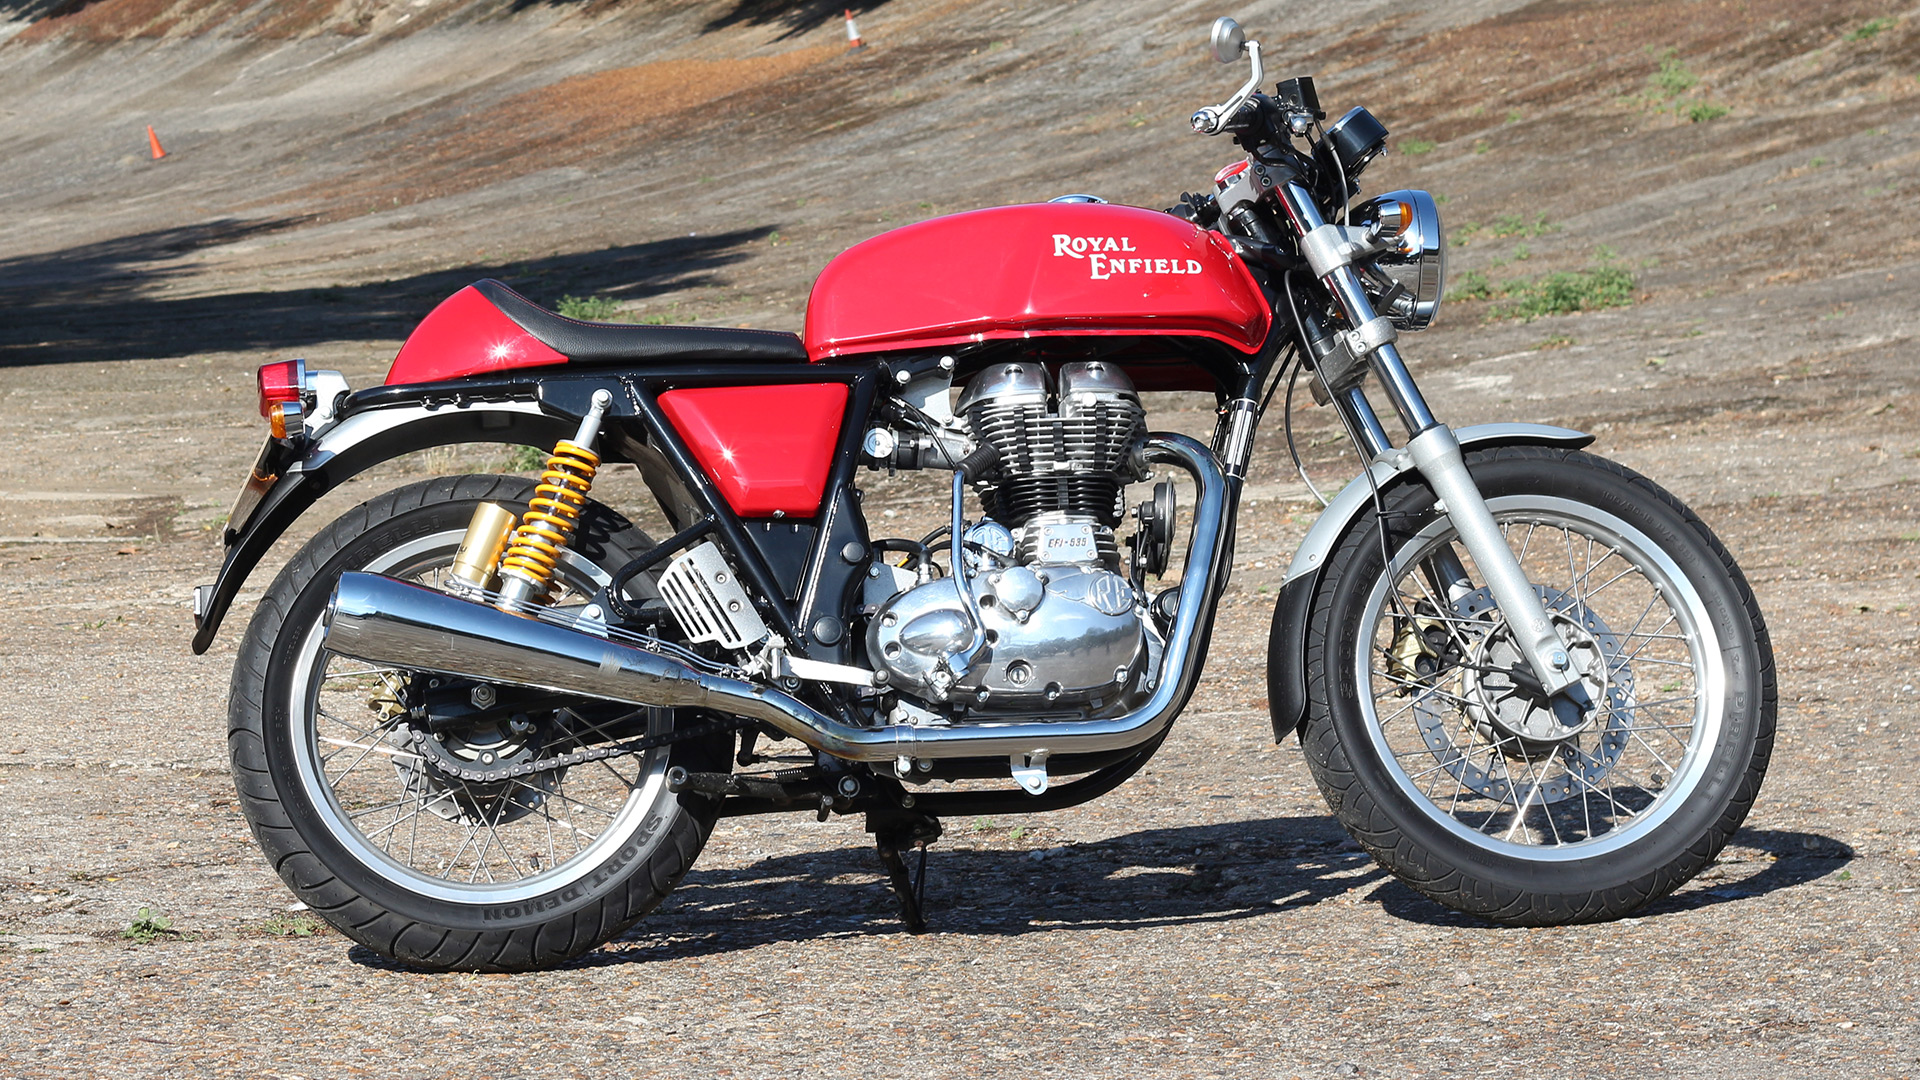 royal enfield continental gt 535 2013 price mileage reviews specification gallery overdrive. Black Bedroom Furniture Sets. Home Design Ideas